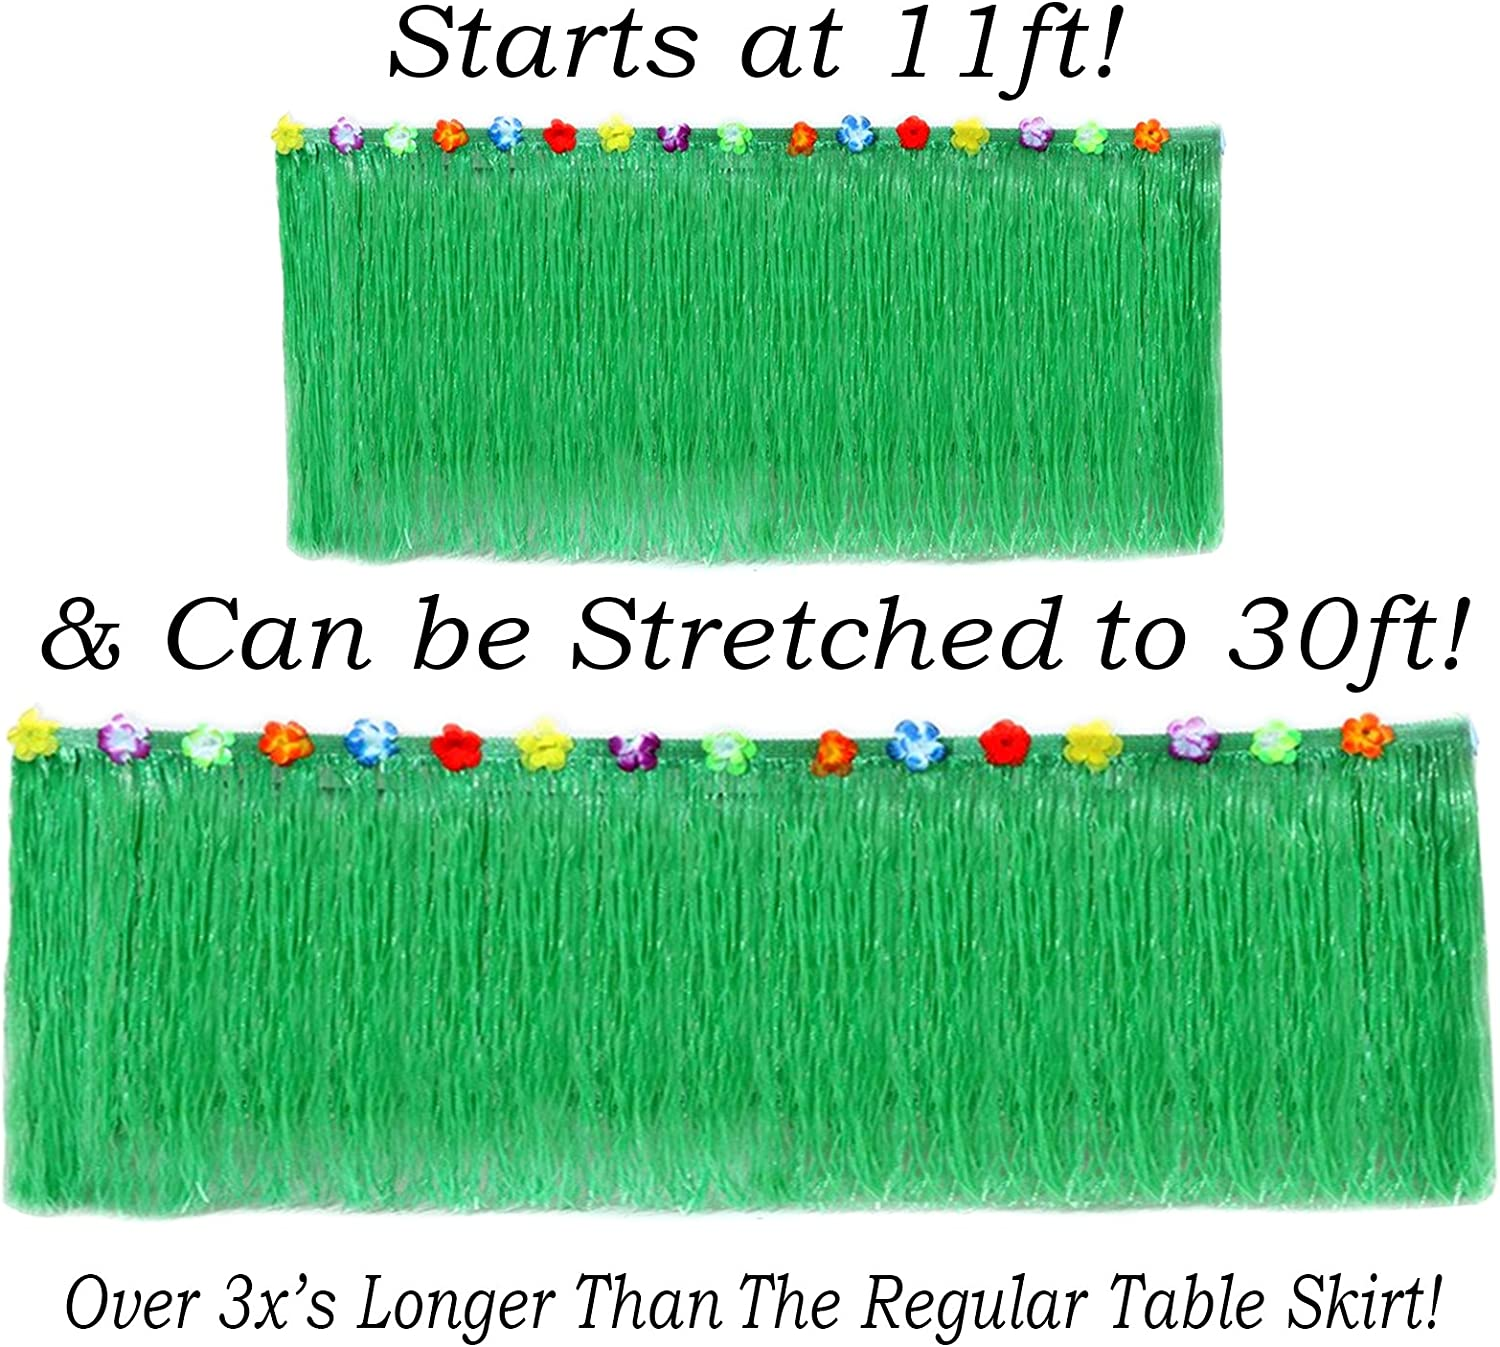 "Hawaiian Table Skirt 11ft Long Stretches to 30ft! | (29"" Tall) Green Hibiscus Luau Party Decoration 